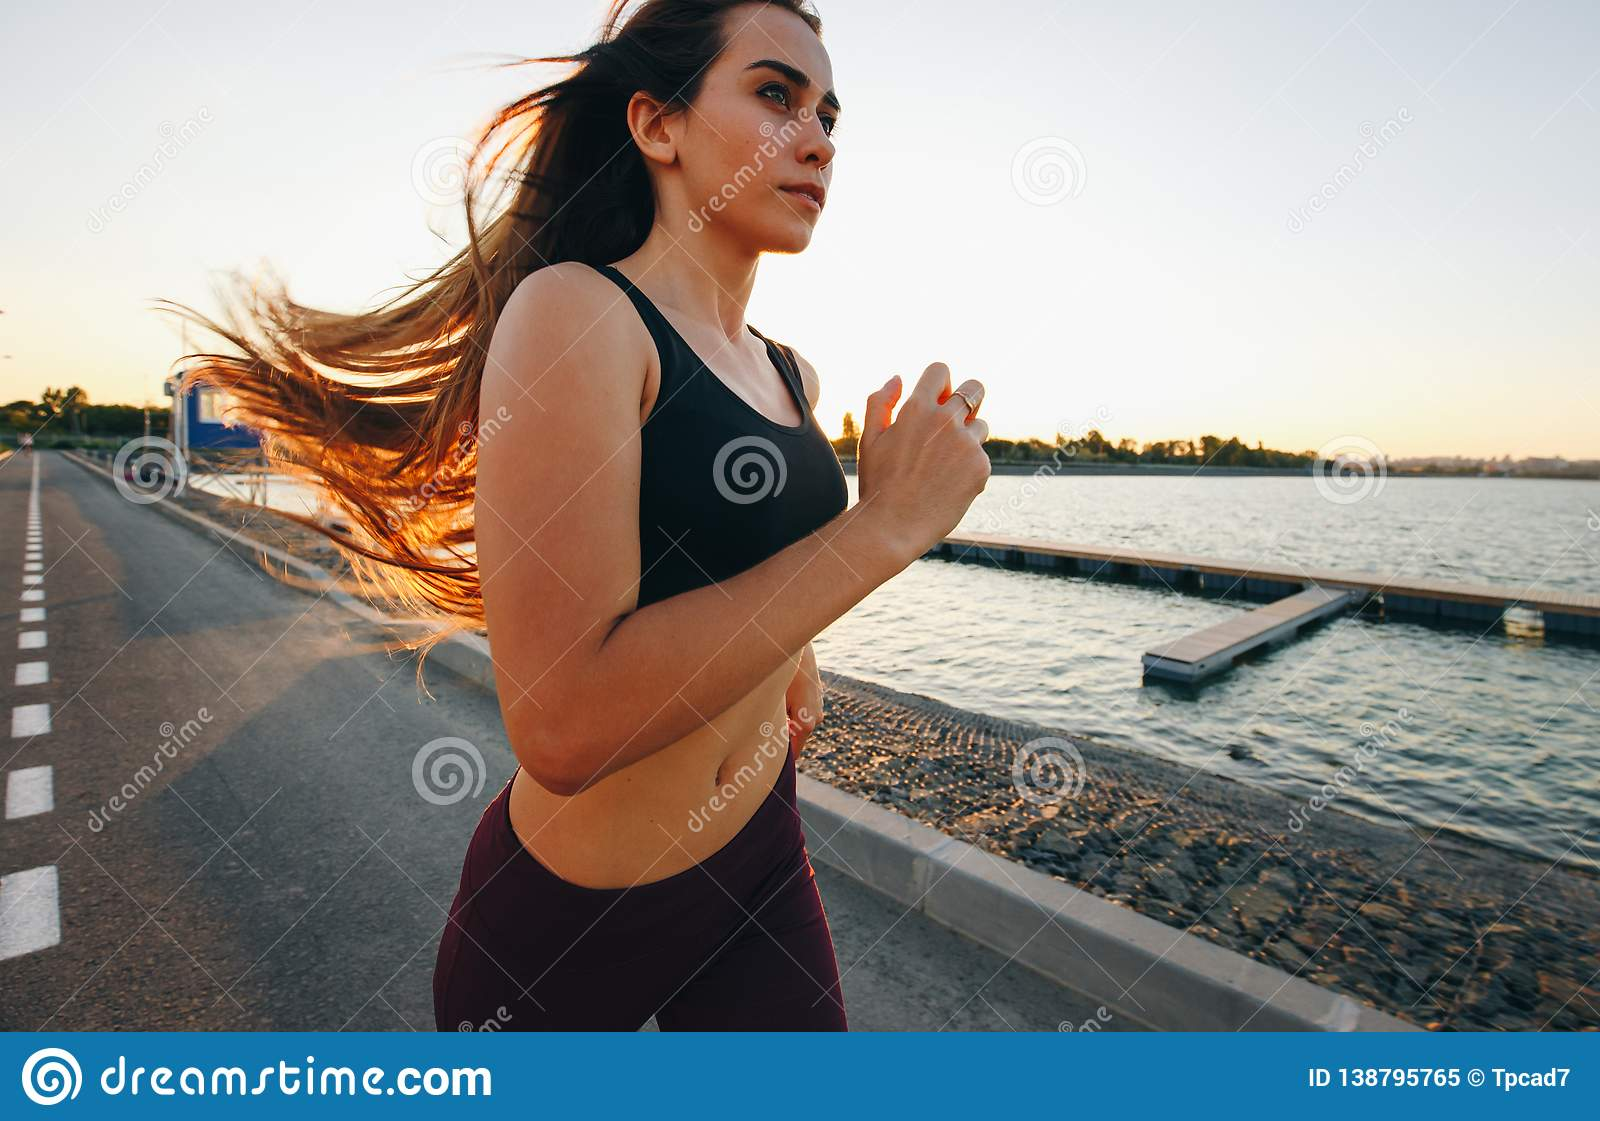 Gorgeous young girl with long brown hair in a sports top and tights runs on the road along the reservoir on the sunset